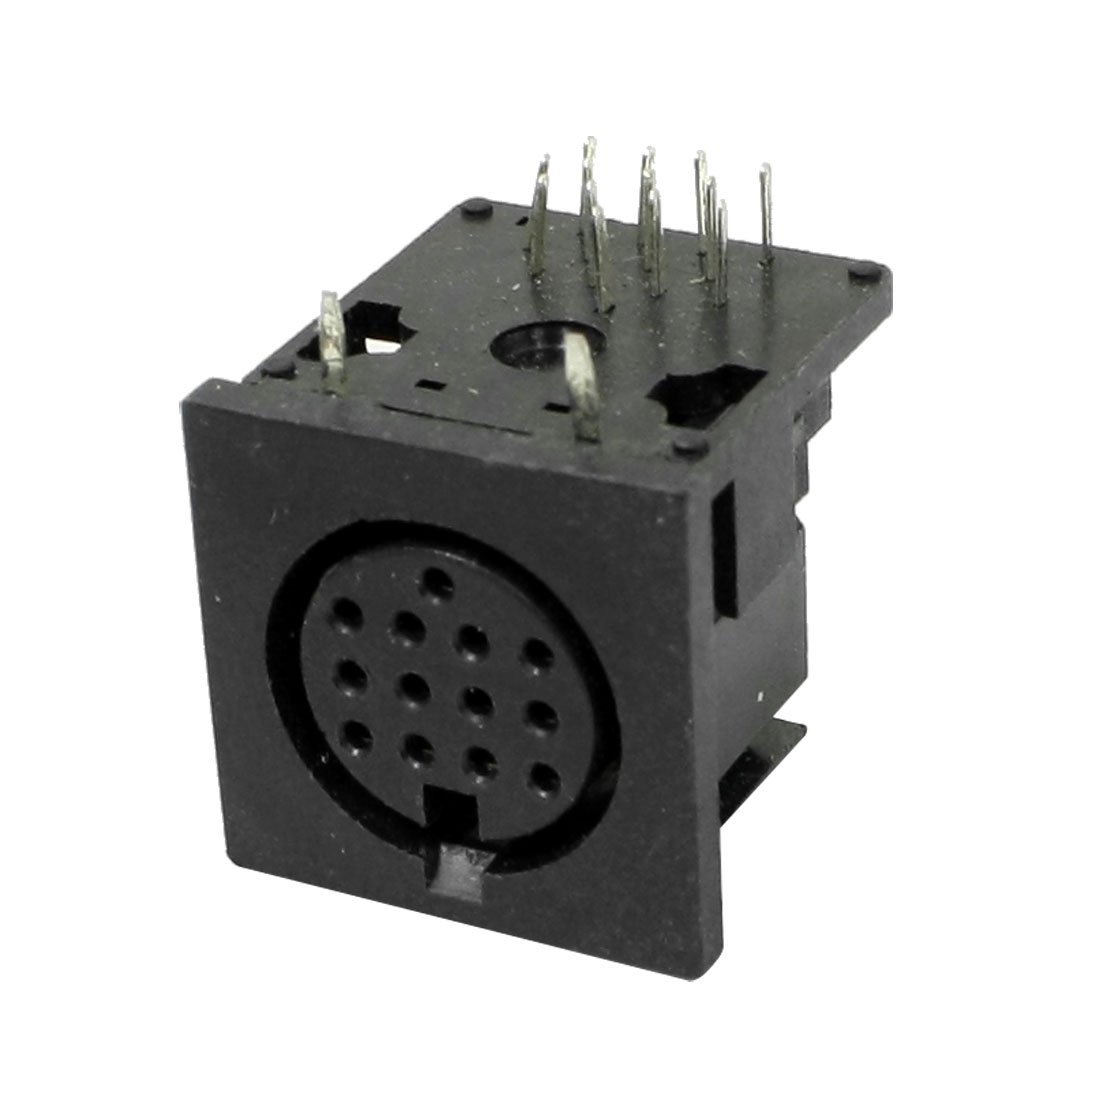 Bill Bax Gk13 Breakout Box Anyone See This Circuit Board Mounting Bracket For Din Rail Ebay Http Ebaycom Itm Pcb Mount 13 Terminals Female S Video Sockets Connector Adapter 311097232478